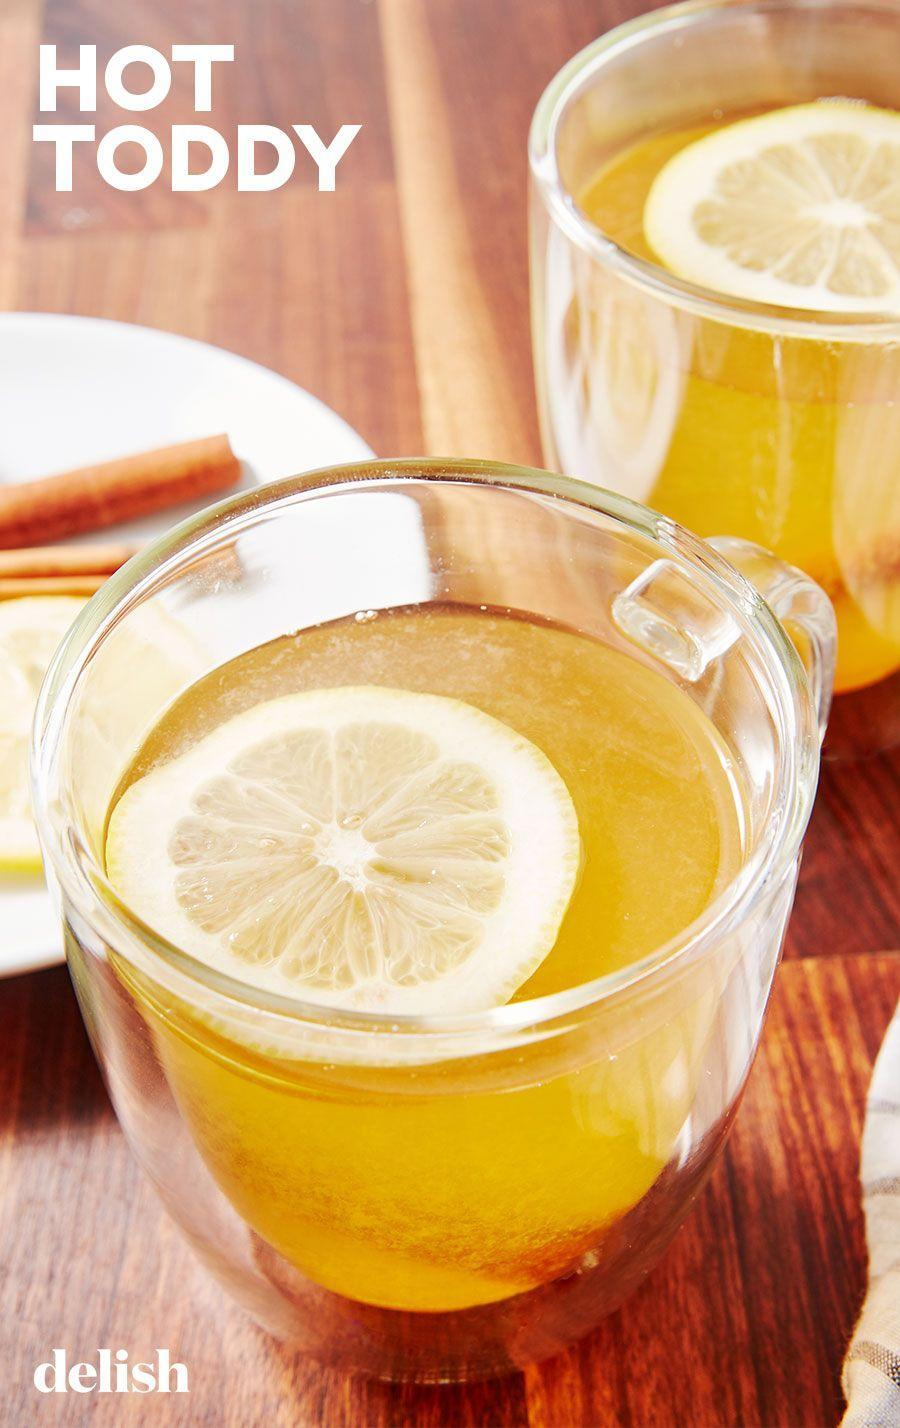 """<p>You can make an apple cider variation with a few swaps.</p><p>Get the recipe from <a href=""""https://www.delish.com/cooking/recipe-ideas/a28845622/hot-toddy-drink-recipe/"""" rel=""""nofollow noopener"""" target=""""_blank"""" data-ylk=""""slk:Delish"""" class=""""link rapid-noclick-resp"""">Delish</a>.</p>"""